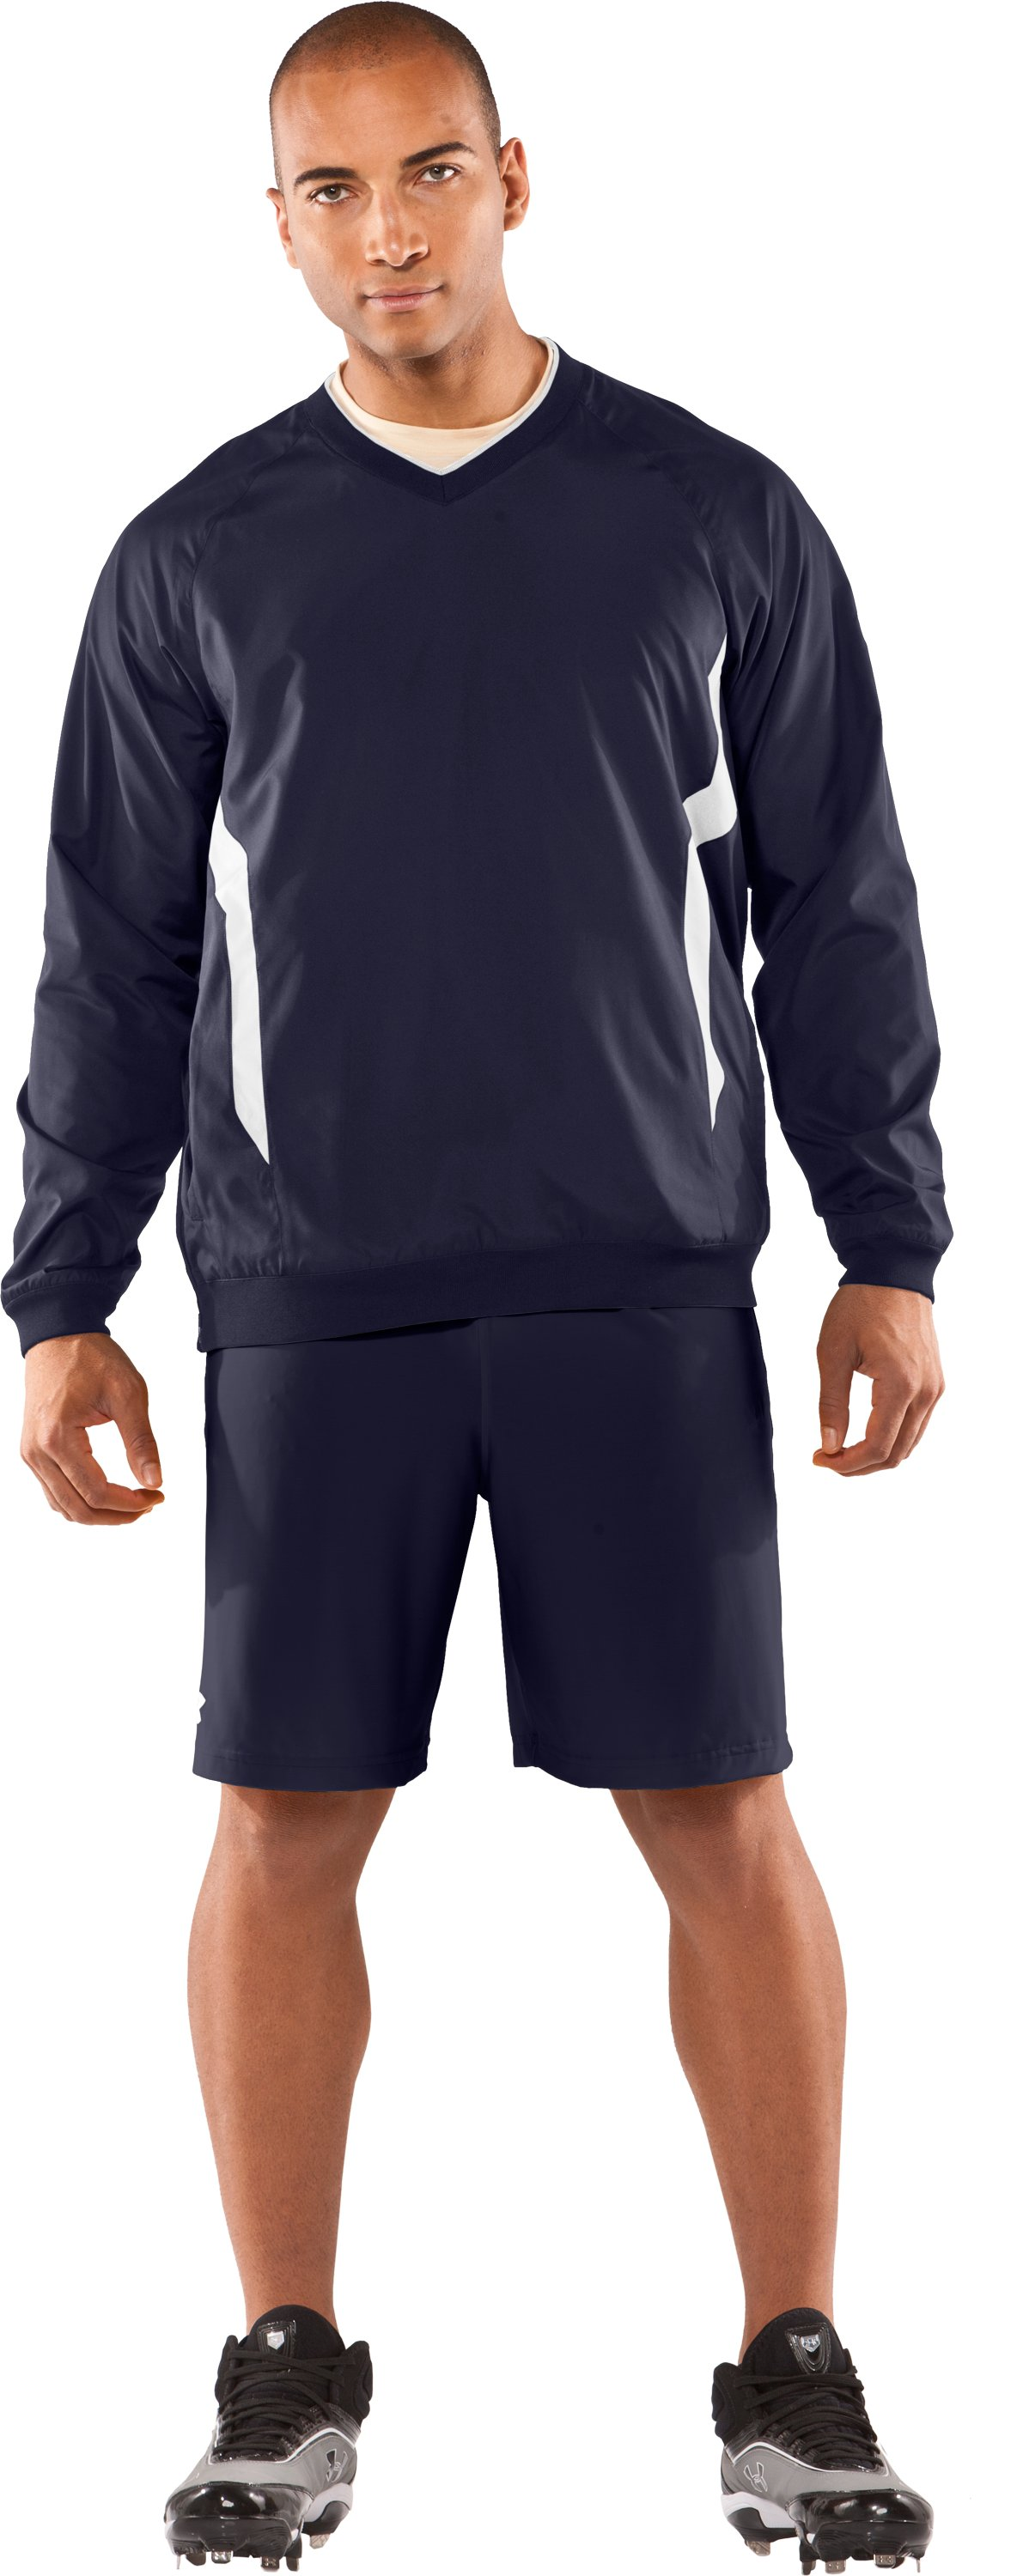 Men's Gamer V-Neck AllSeasonGear® Jacket, Midnight Navy